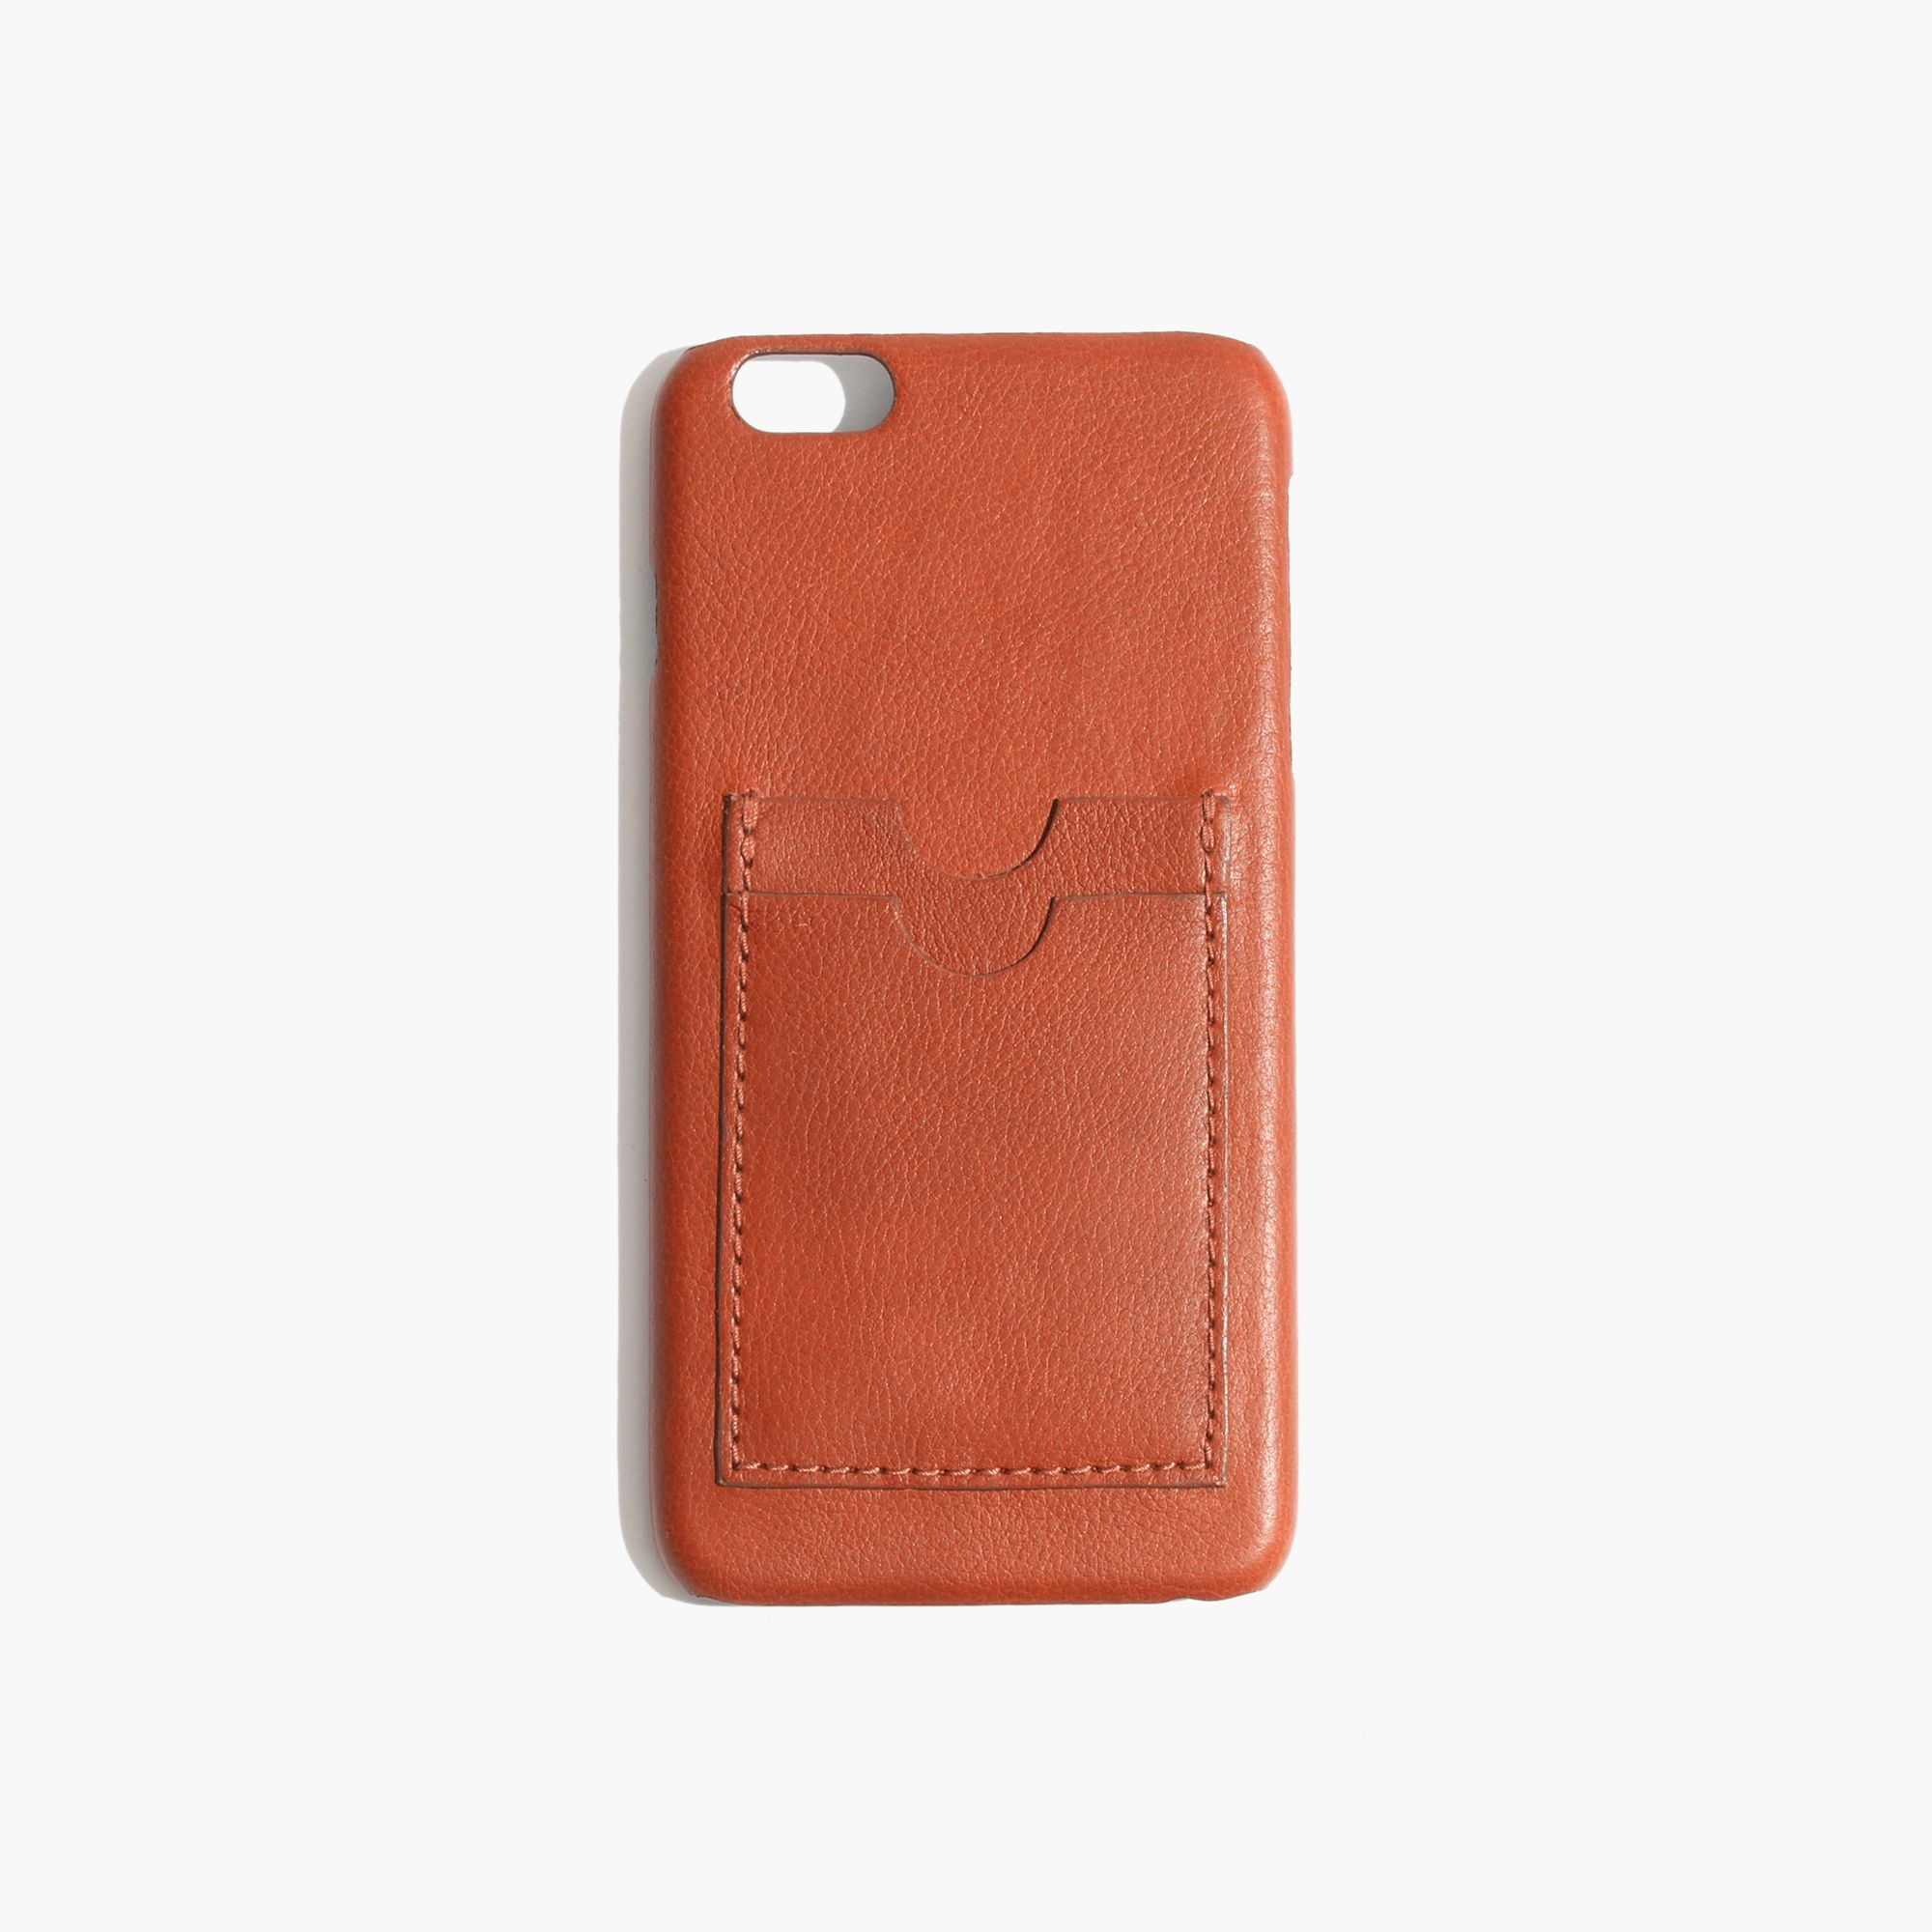 madewell iphone case madewell leather carryall for iphone 174 6 plus in brown 12603